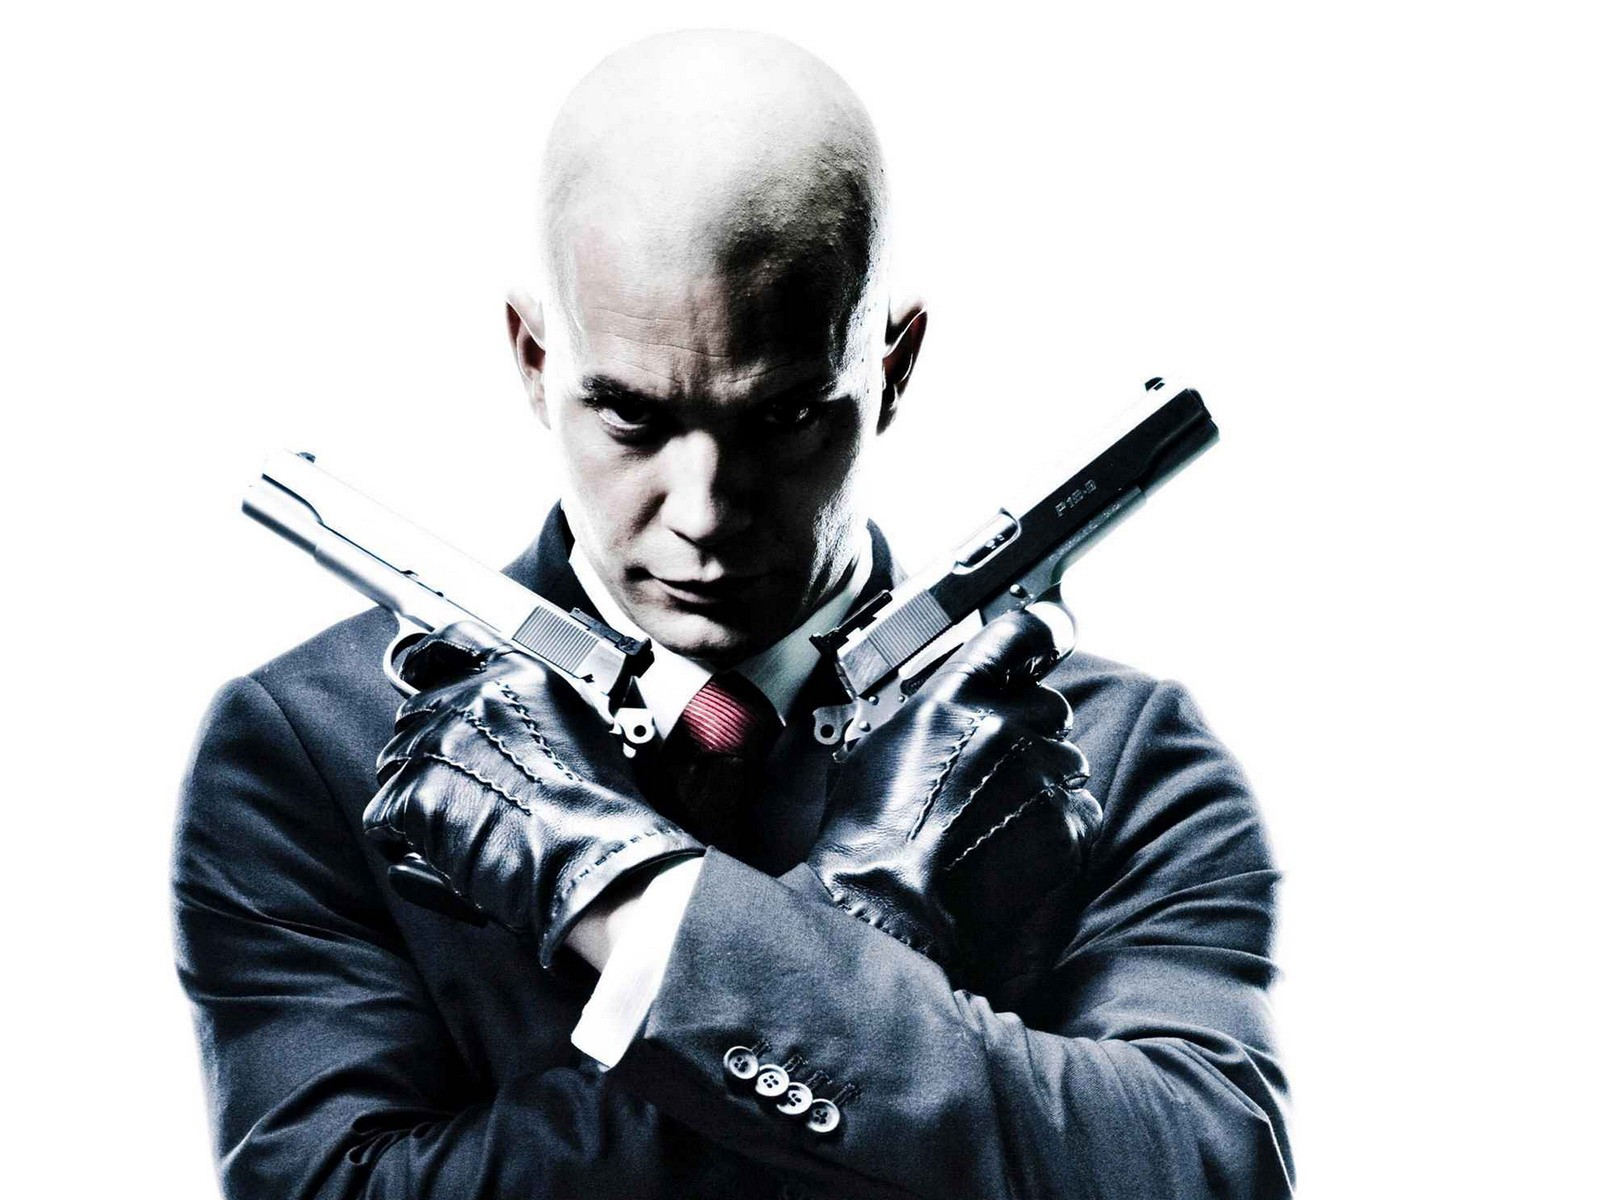 hitman wallpaper you are viewing the games wallpaper named hitman 1600x1200